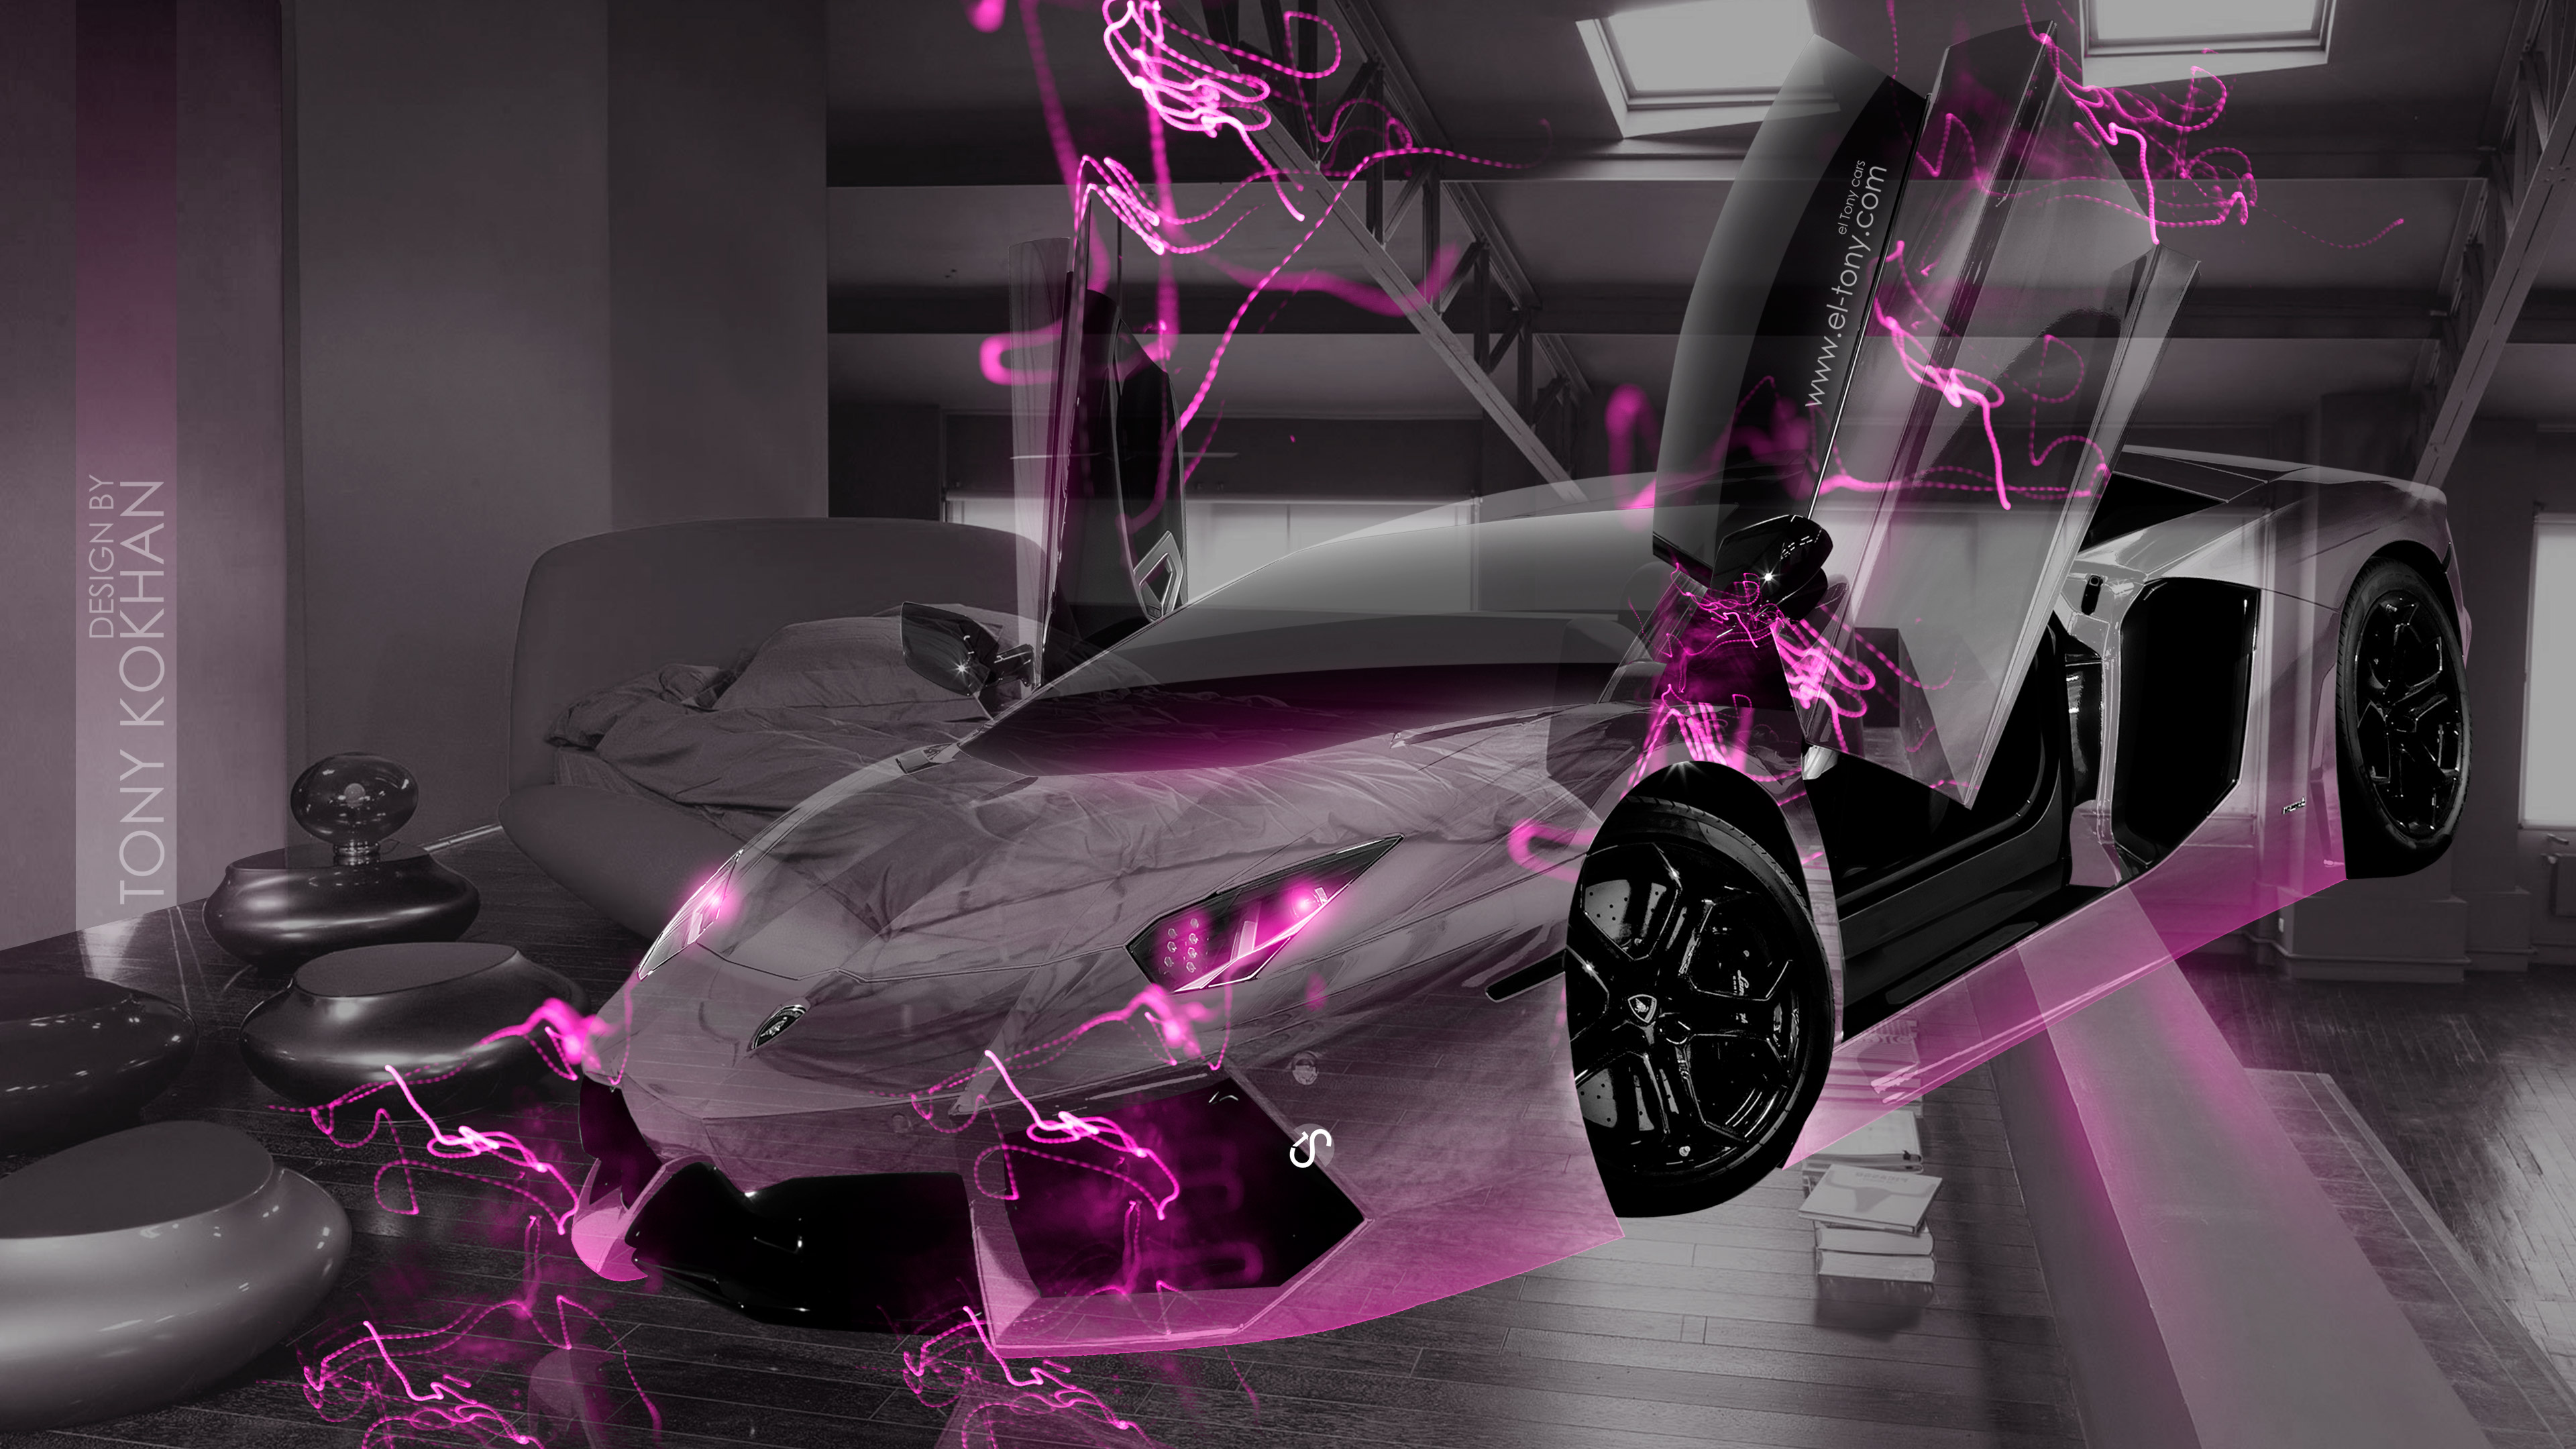 Doors fantasy transformer crystal home fly car 2015 pink neon effects